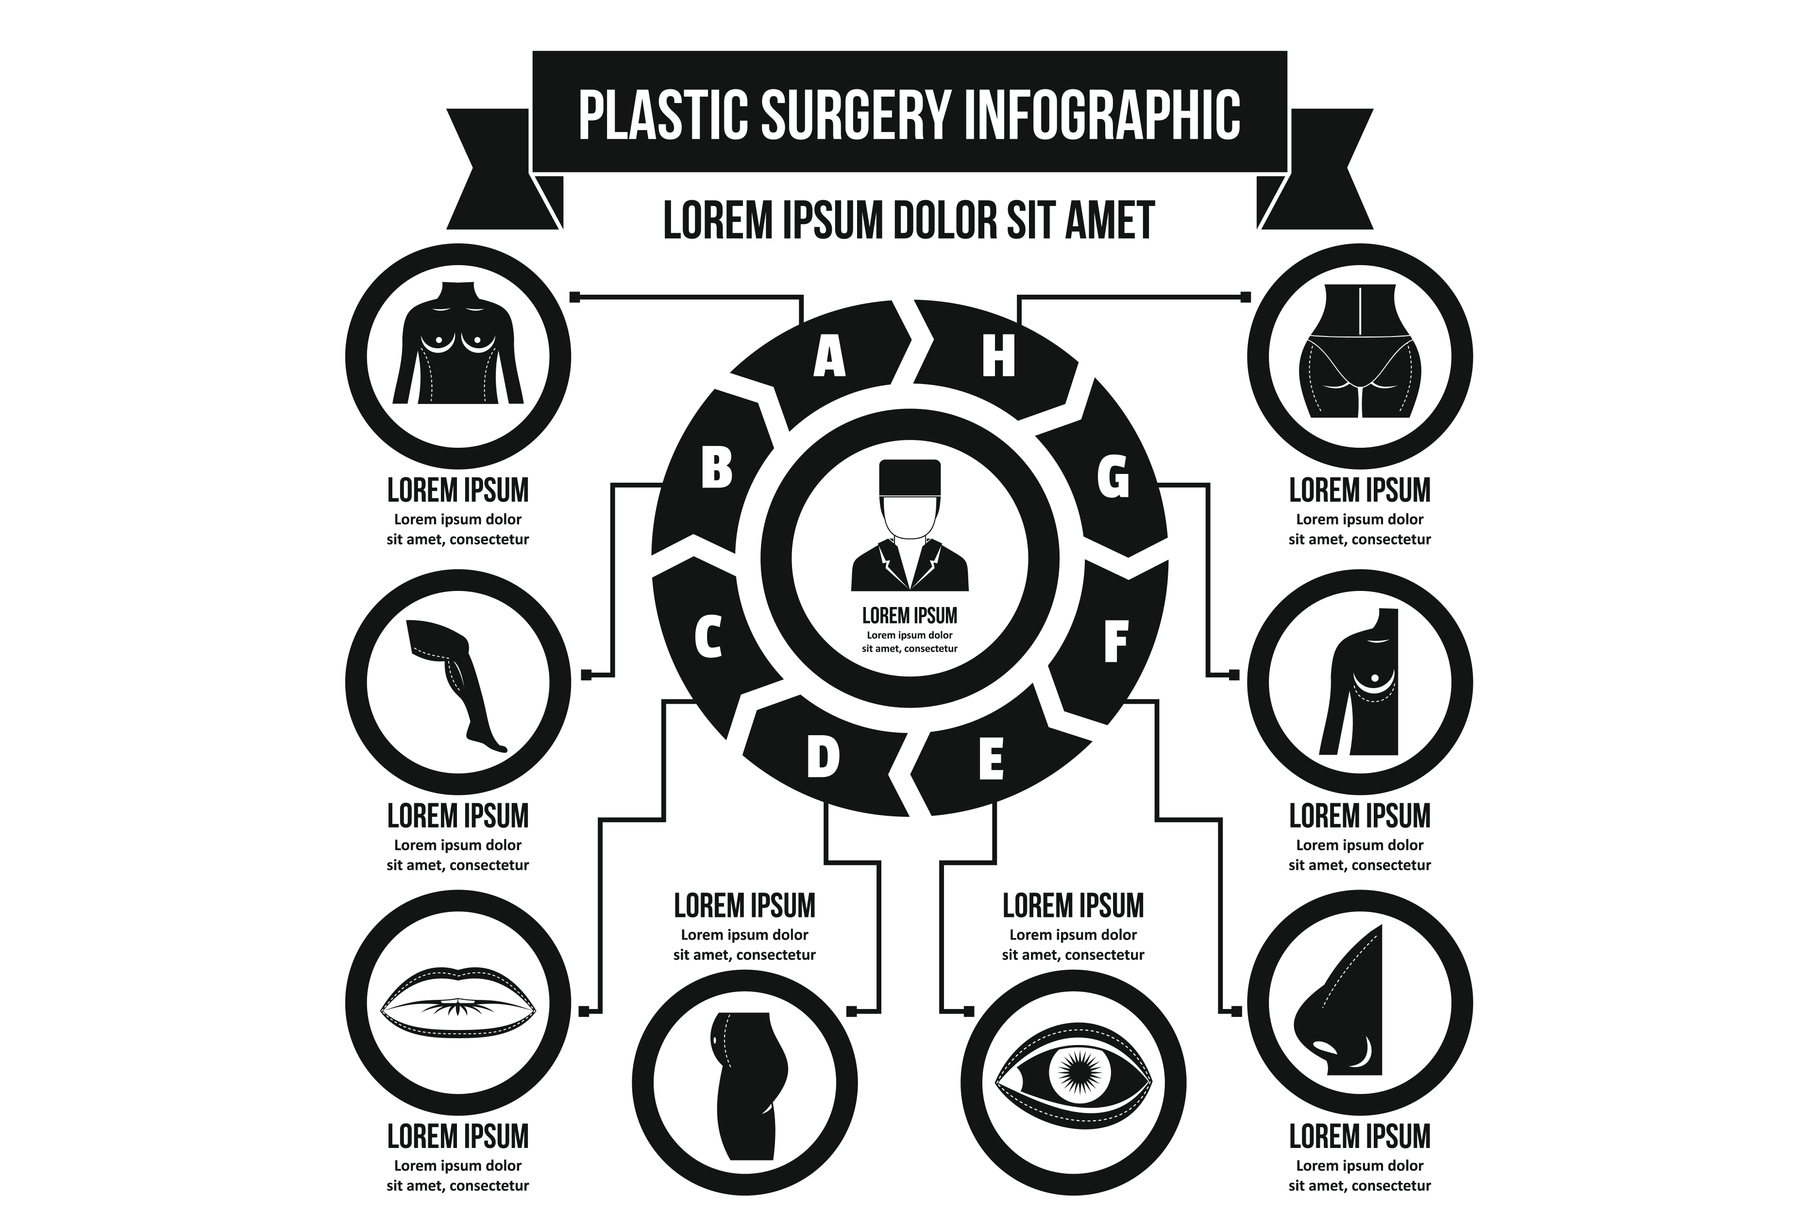 Plastic surgery infographic concept, simple style example image 1